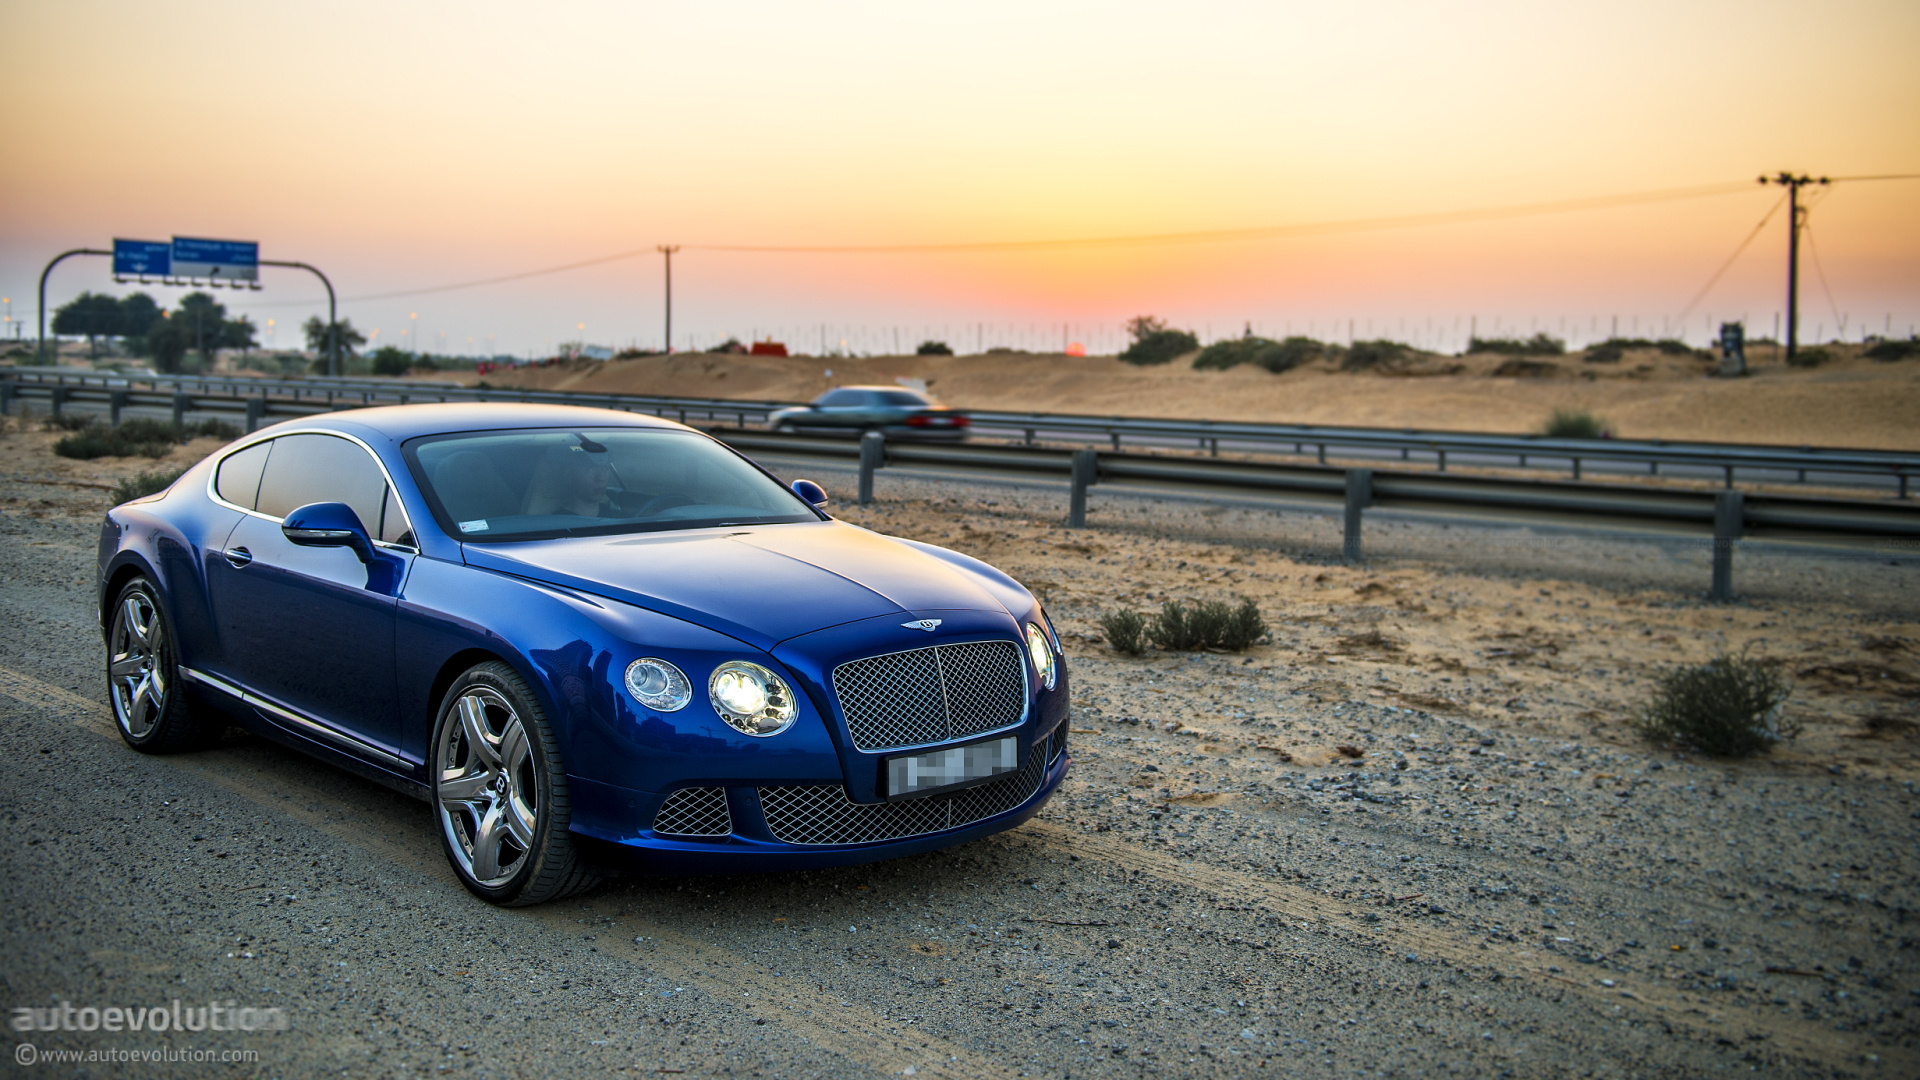 Bentley continental gt w12 review autoevolution - Bentley Continental Gt W12 Review Autoevolution 2